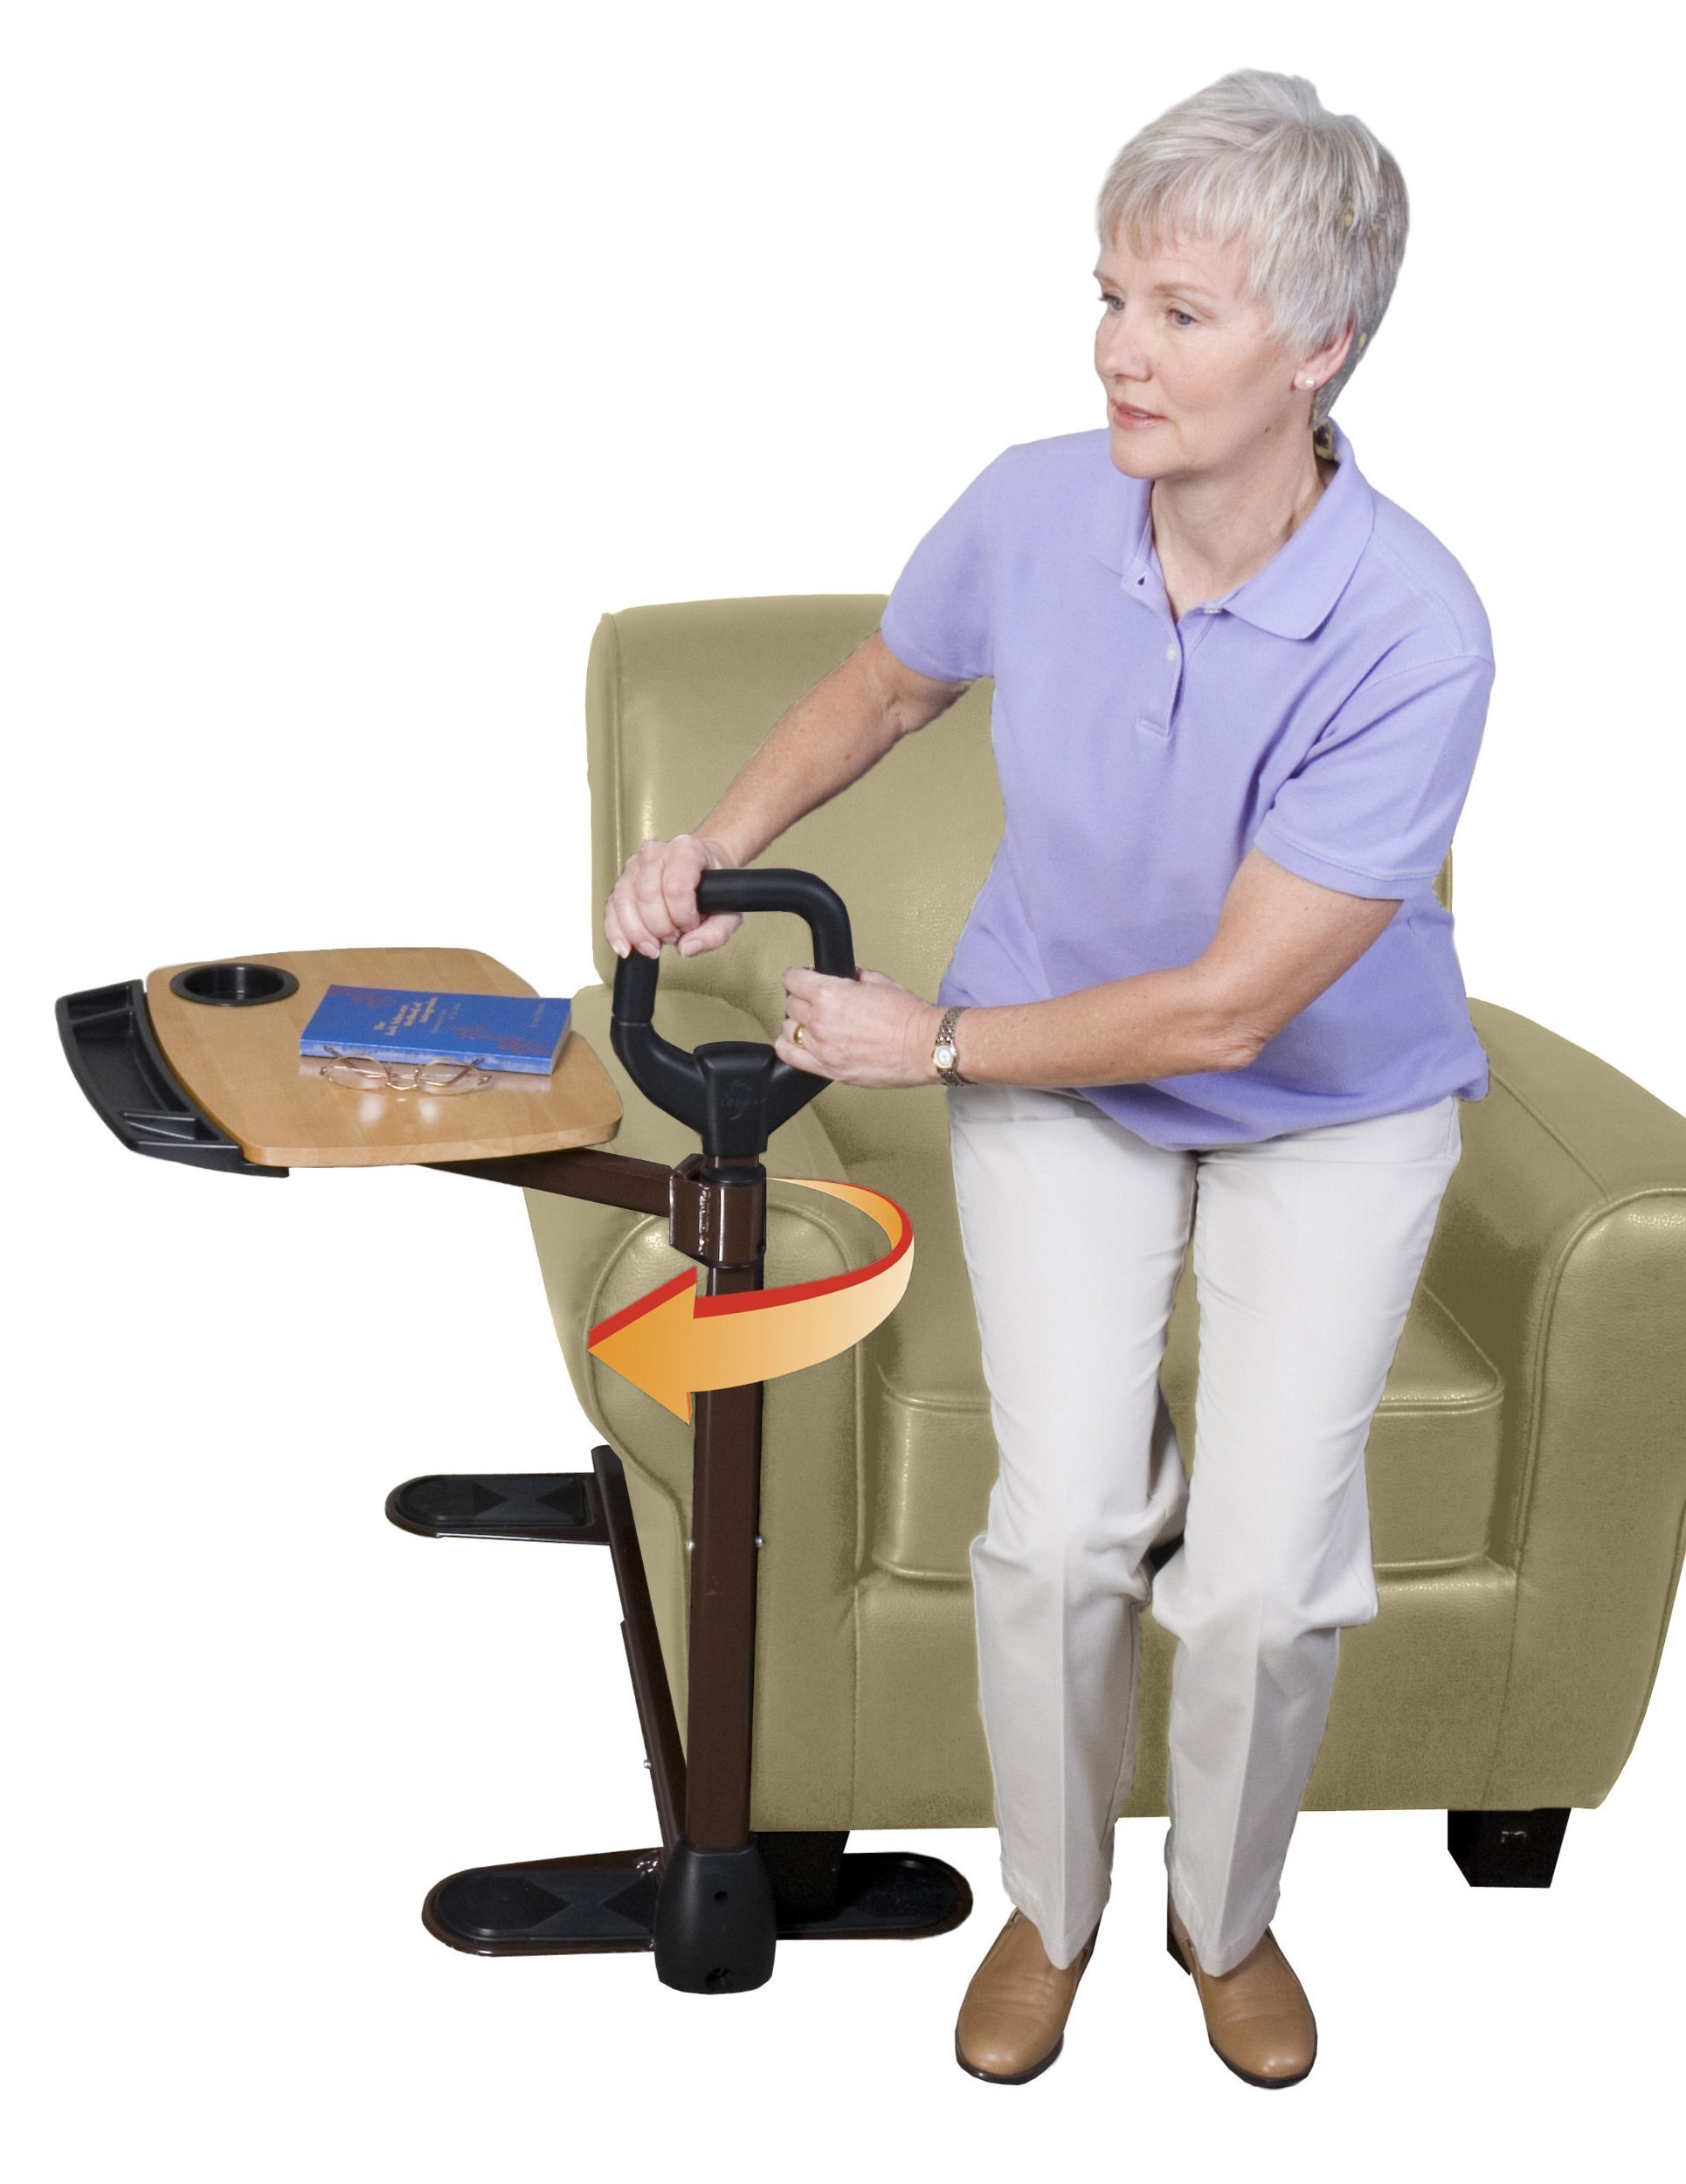 Able Life Able Tray Table, Adjustable Bamboo Swivel TV and Laptop Table with Ergonomic Stand Assist Safety Handle, Independent Living Aid by Able Life